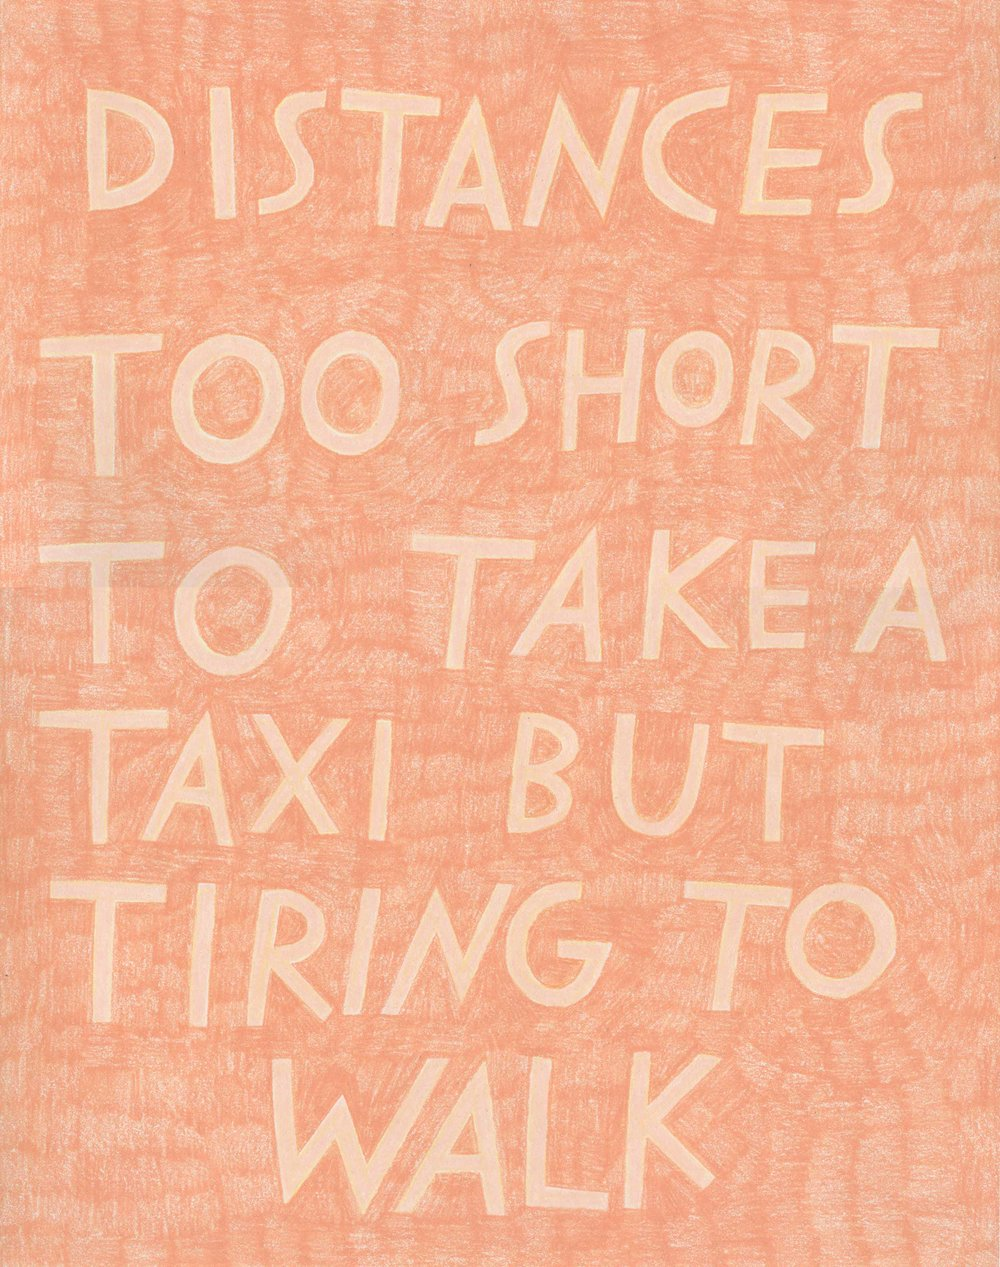 """""""Distances to short to take a taxi but tiring to walk,"""" in light salmon pink on dark salmon pink."""